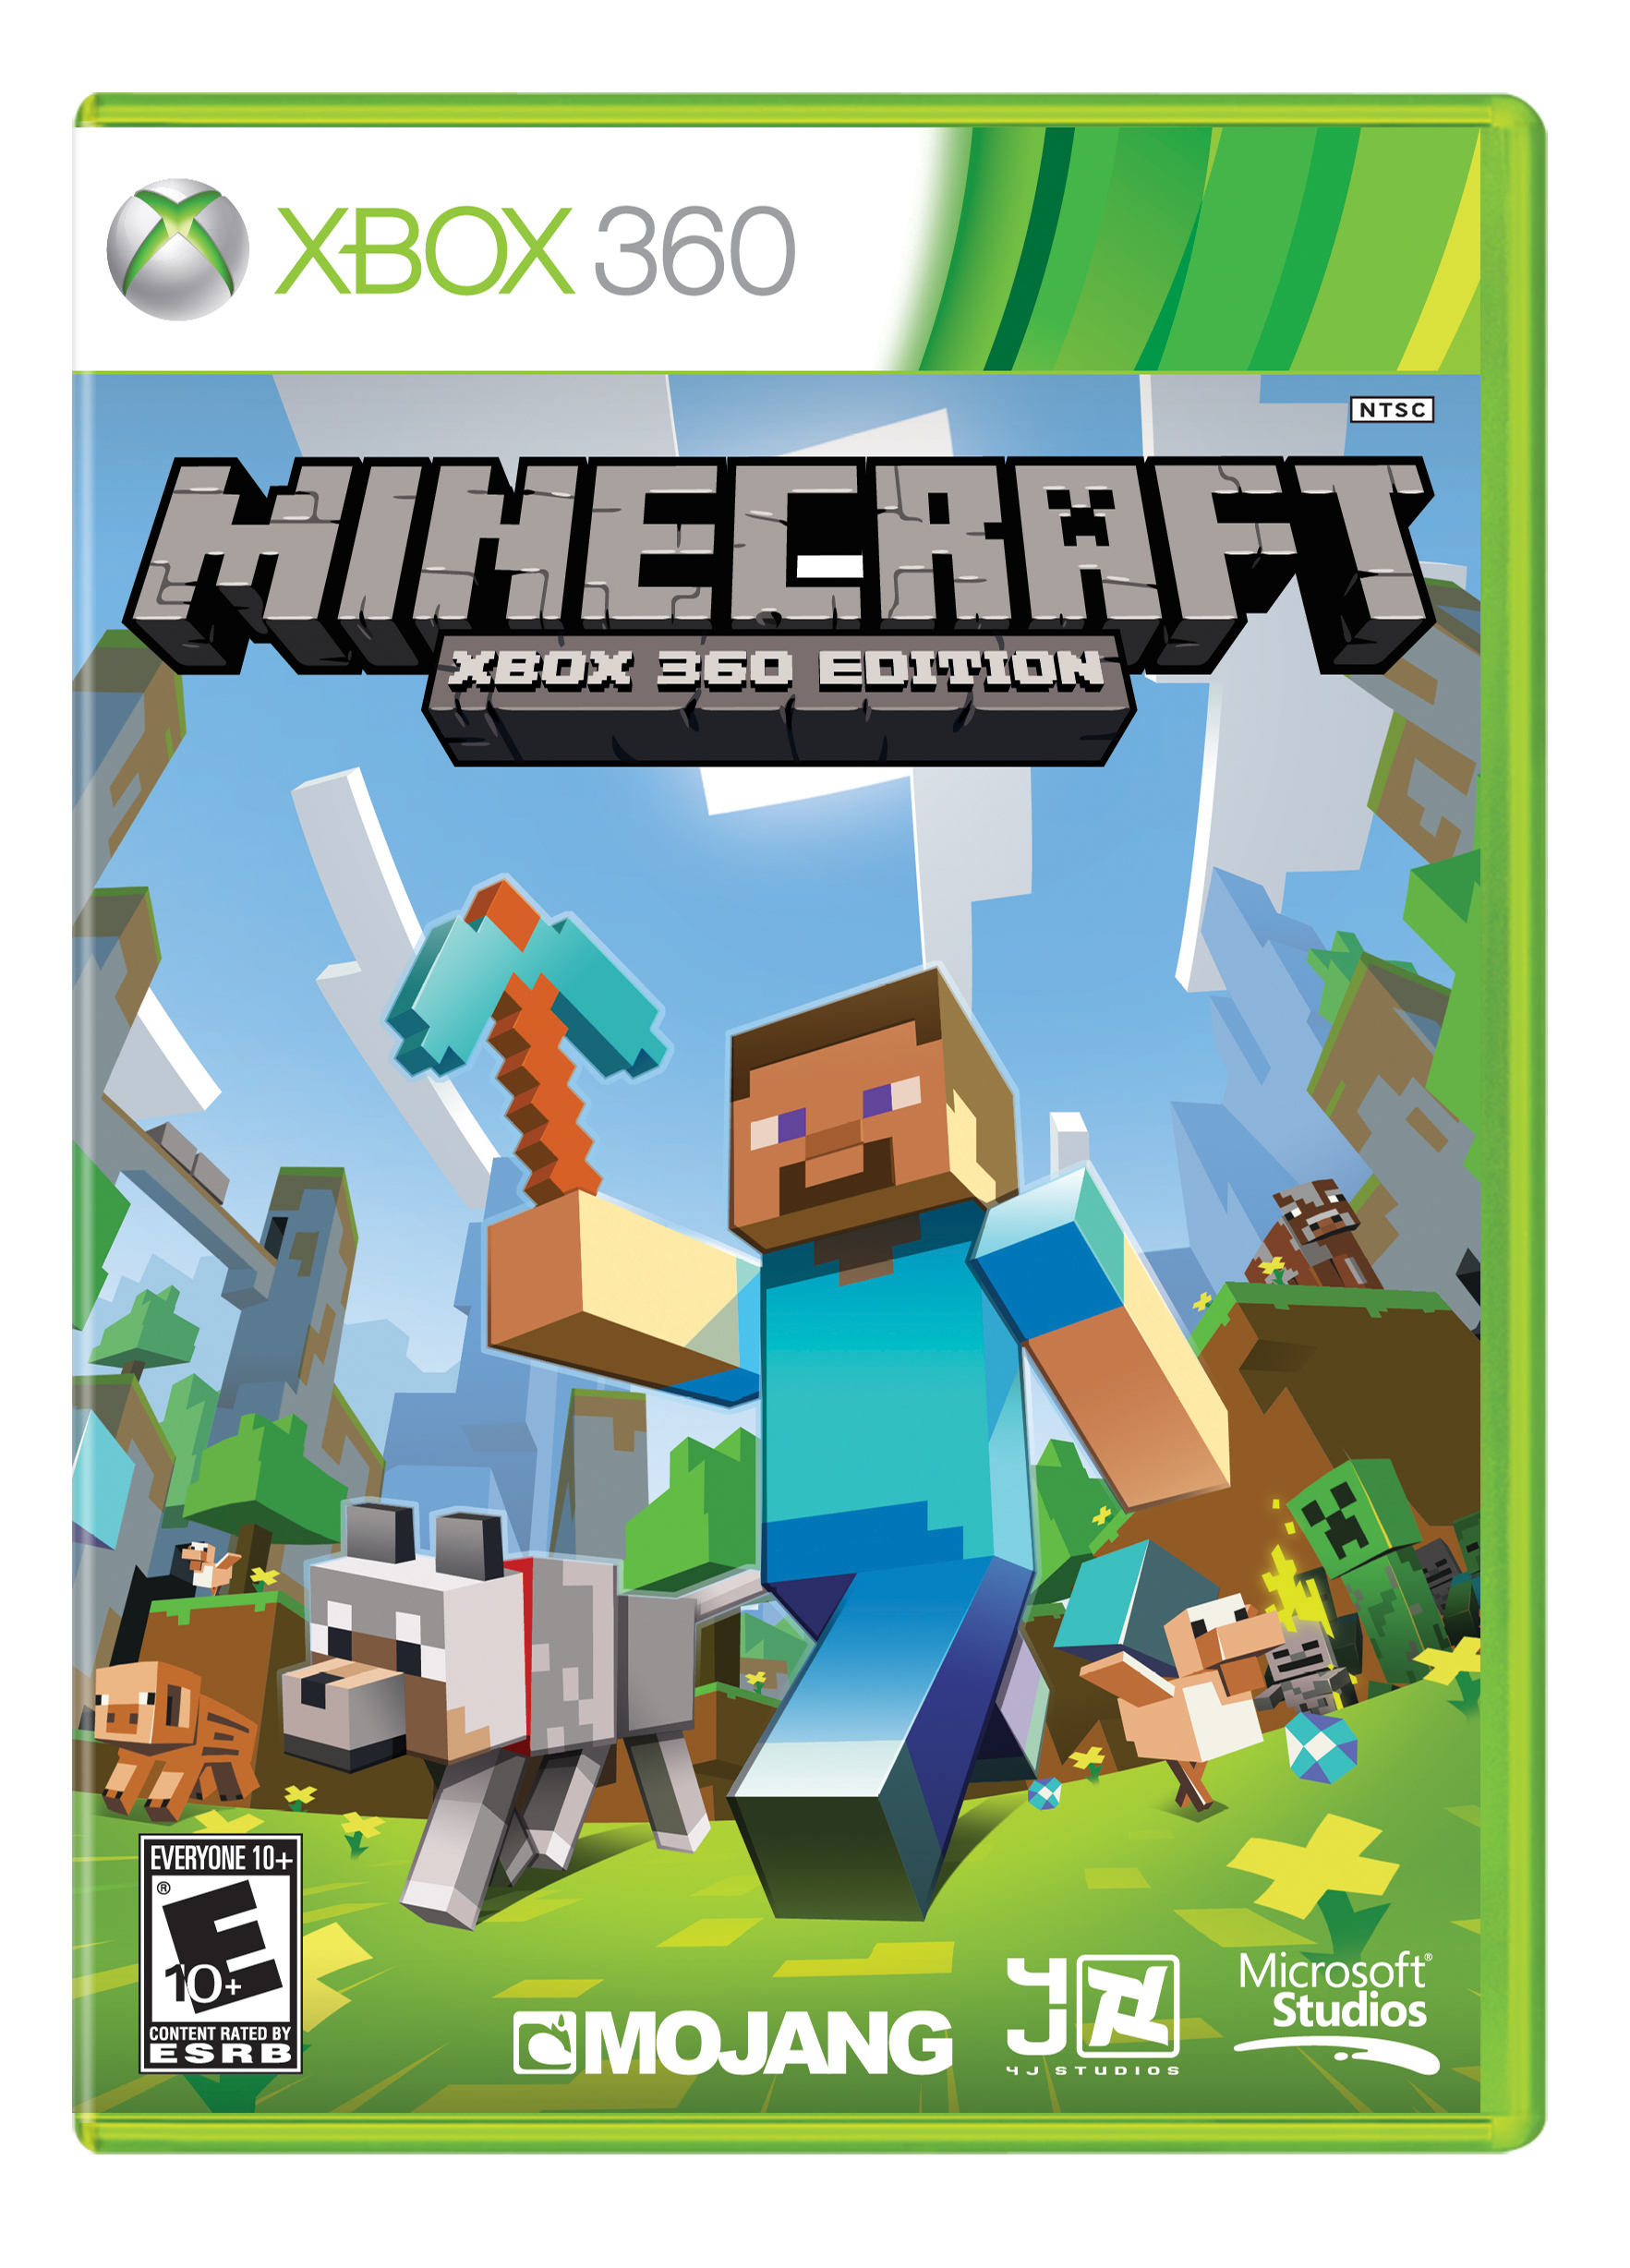 'Minecraft: Xbox 360 Edition' getting a retail release